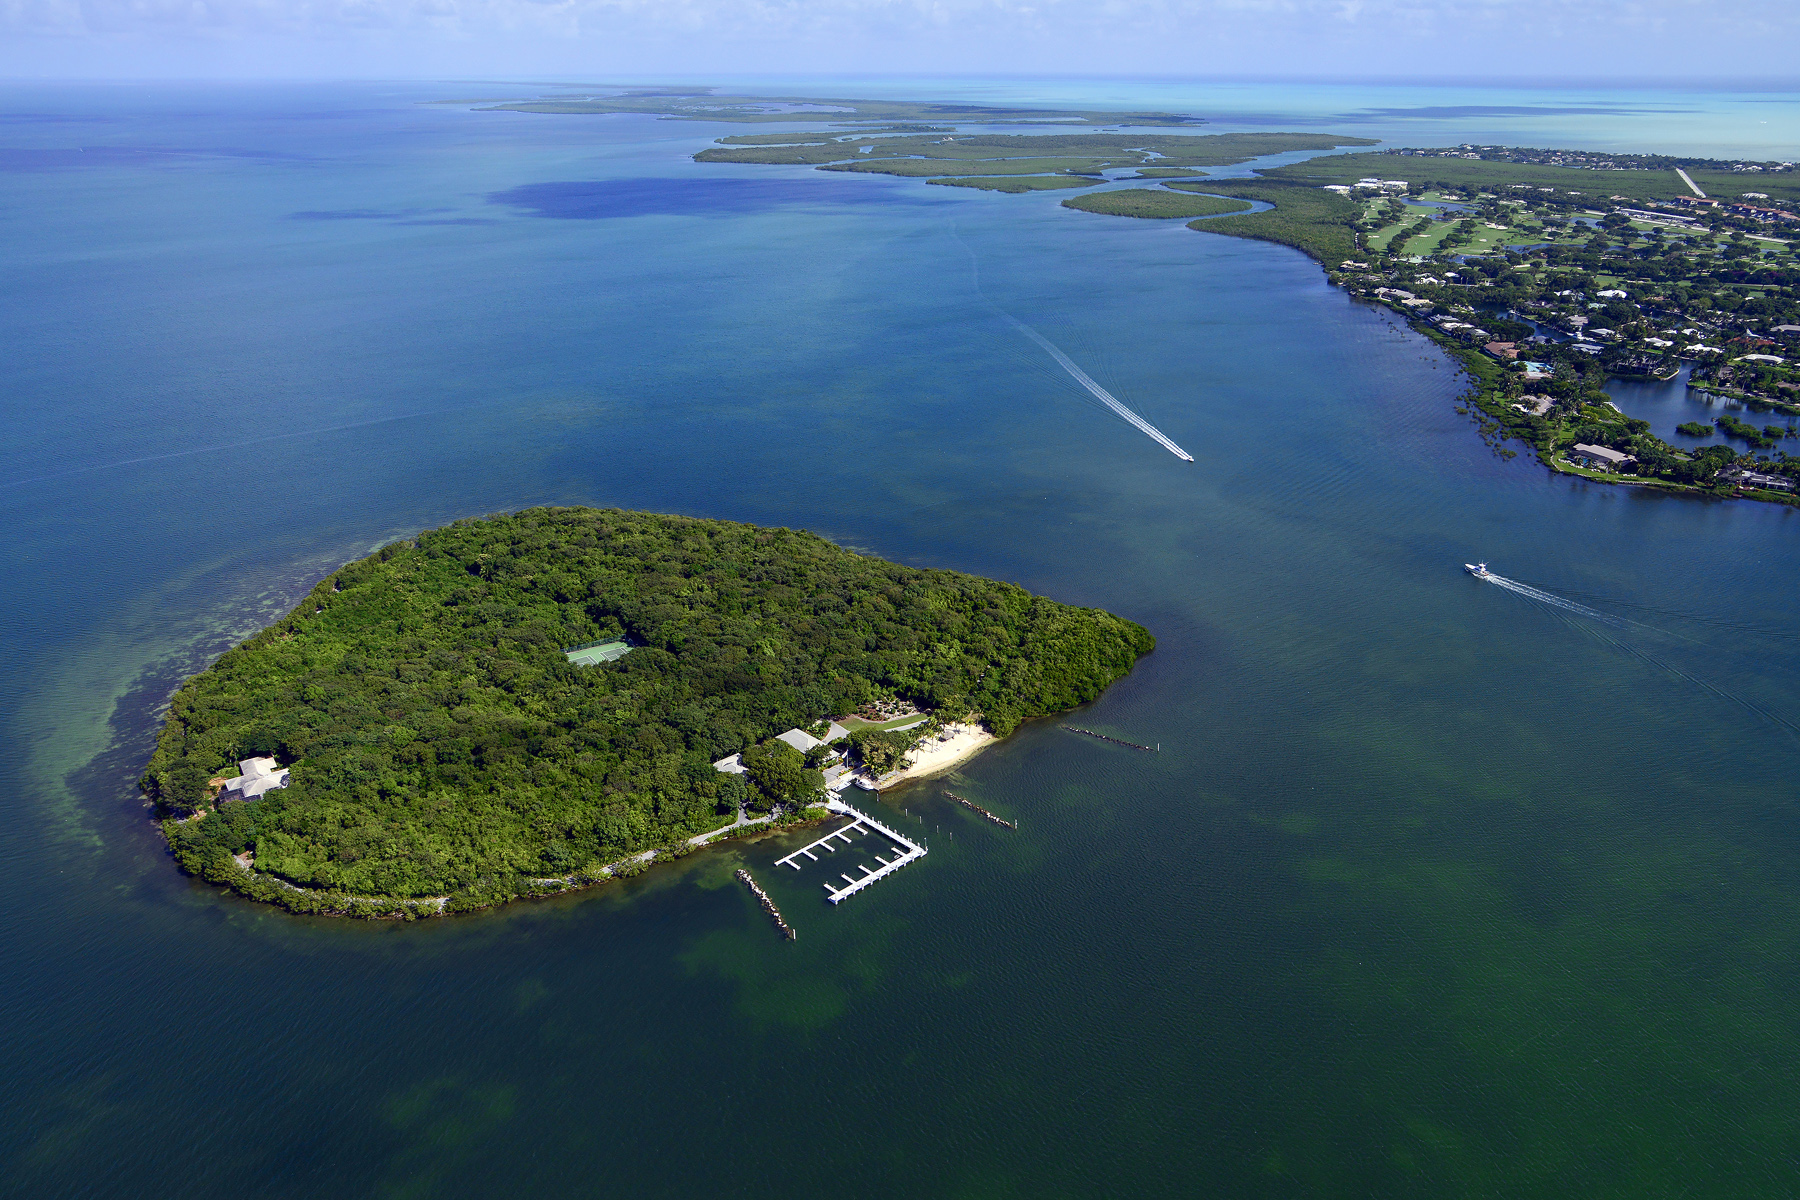 Private Islands for Sale at 10 Cannon Point, Key Largo, FL Key Largo, Florida 33037 United States